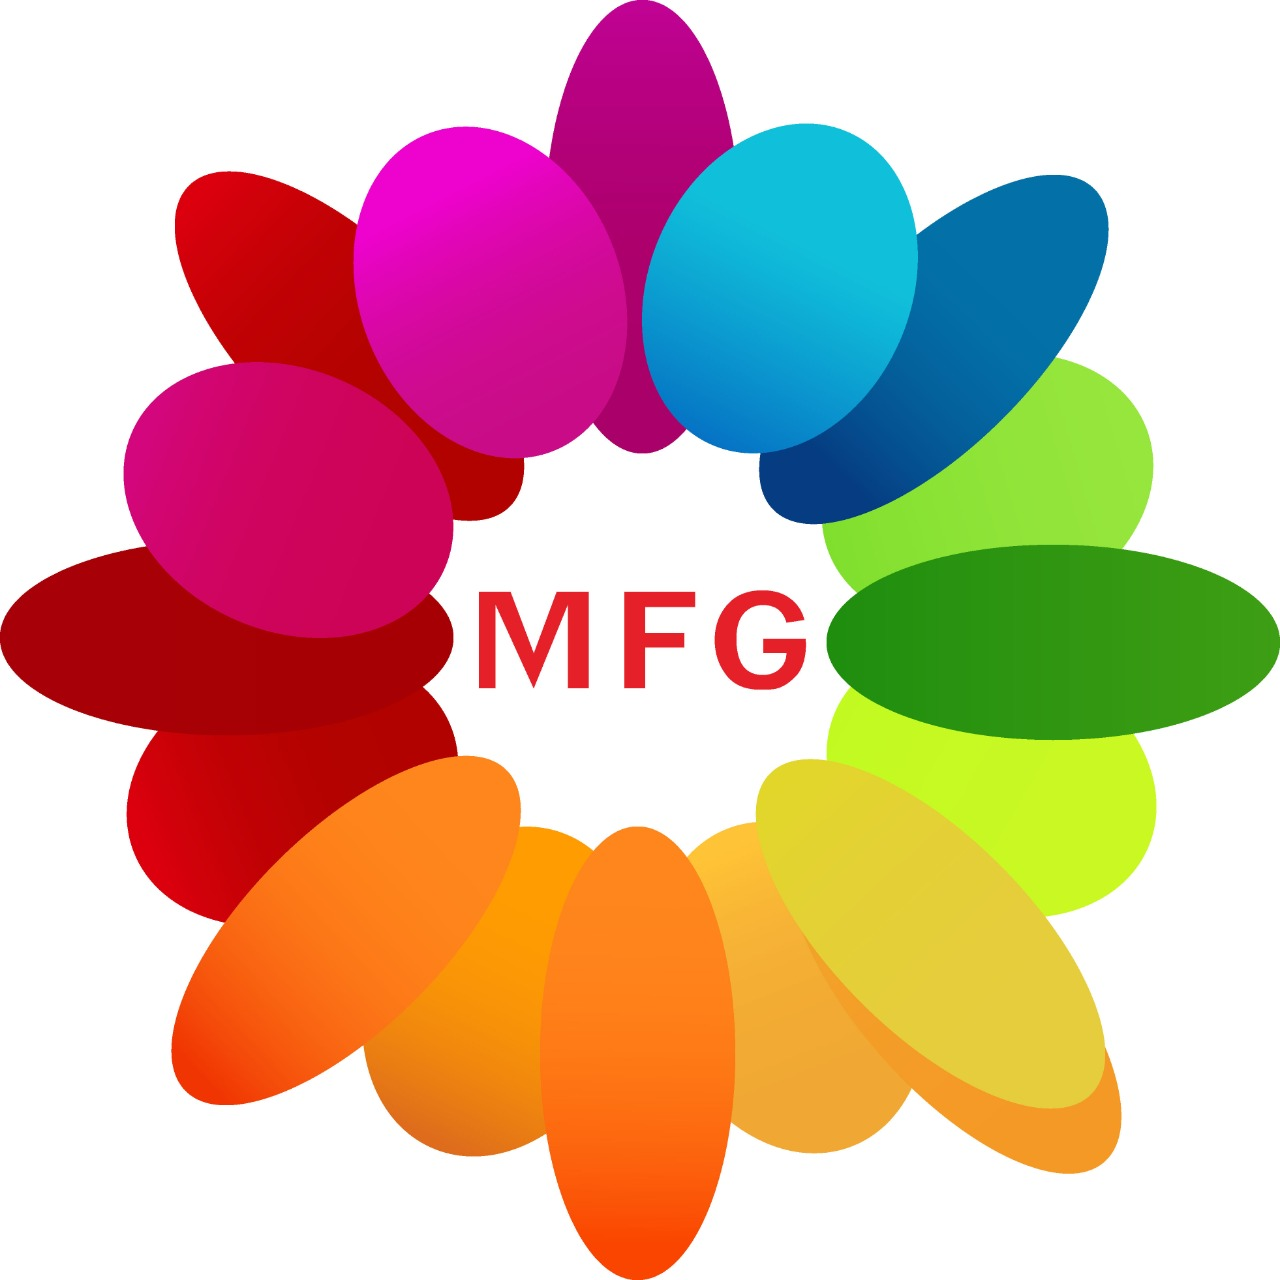 1 kg rich chocolate fruit cake